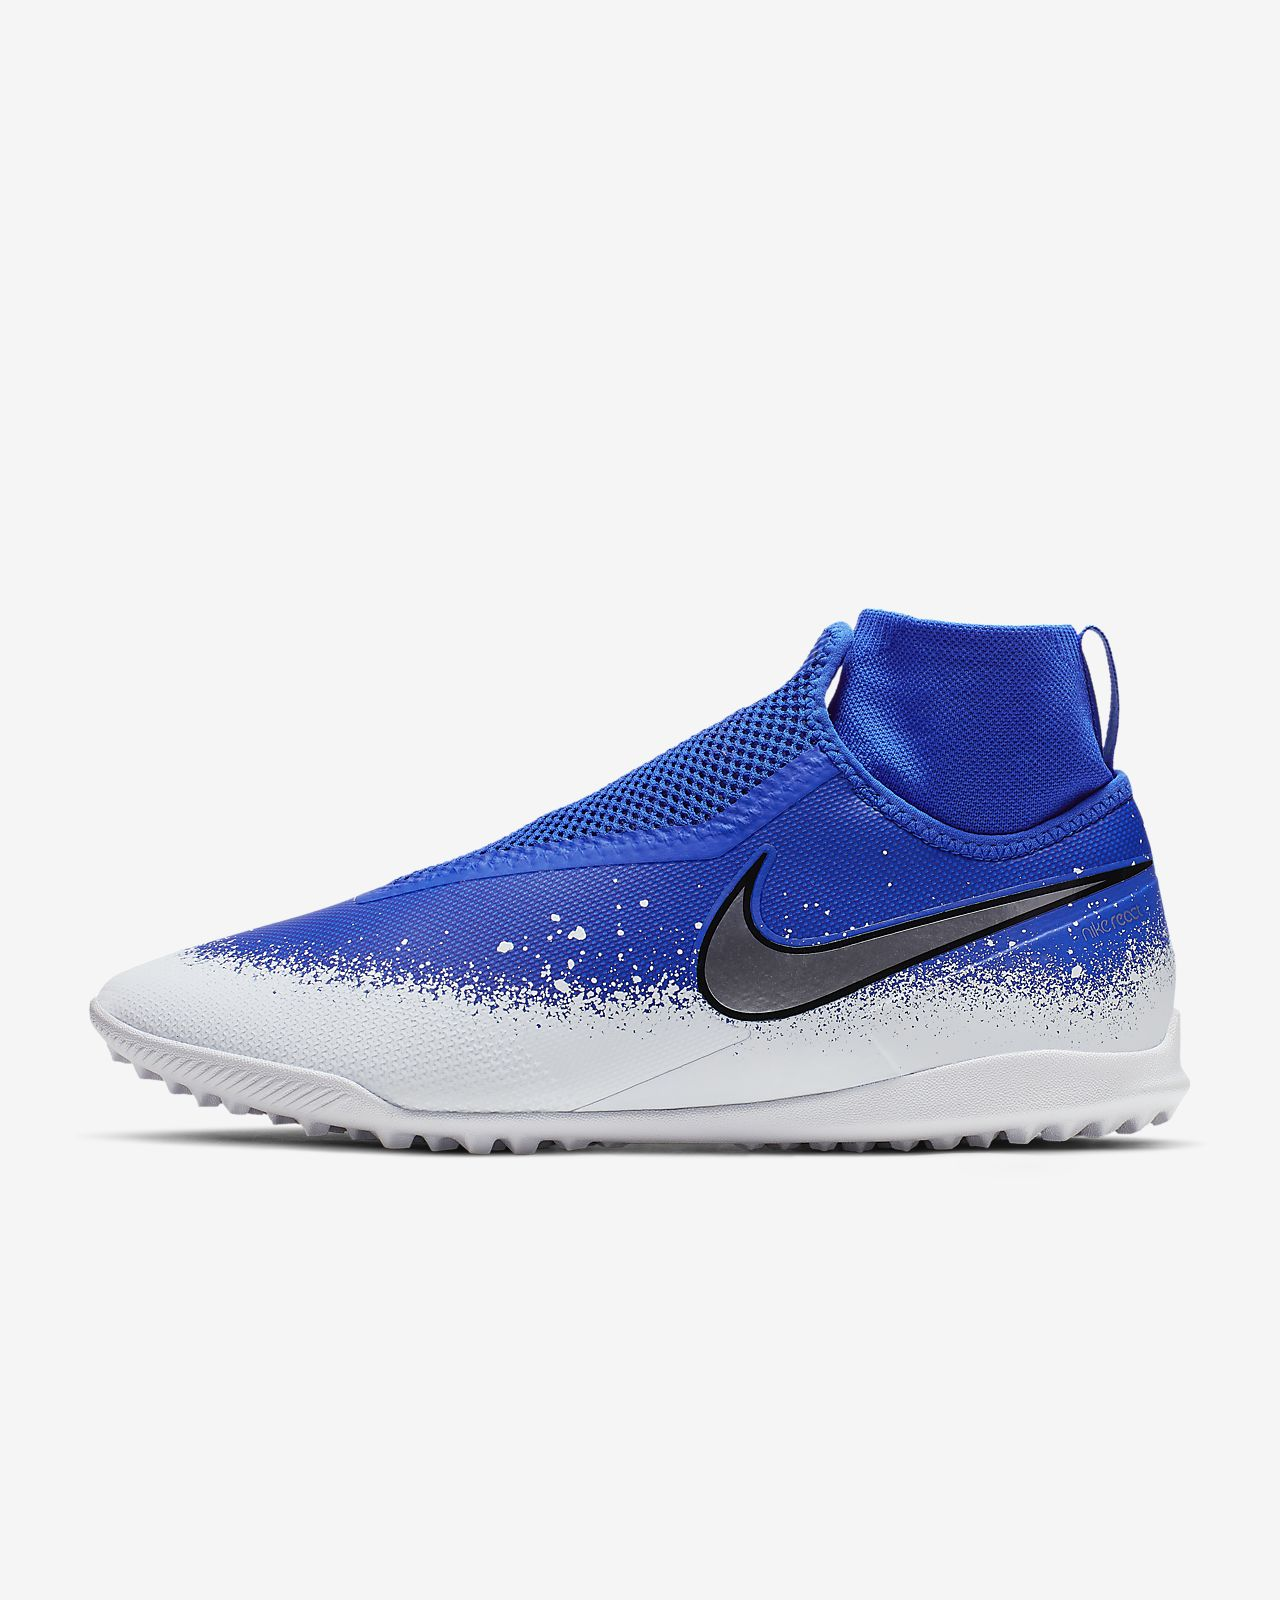 Chaussure de football pour surface synthétique Nike React Phantom Vision Pro Dynamic Fit TF